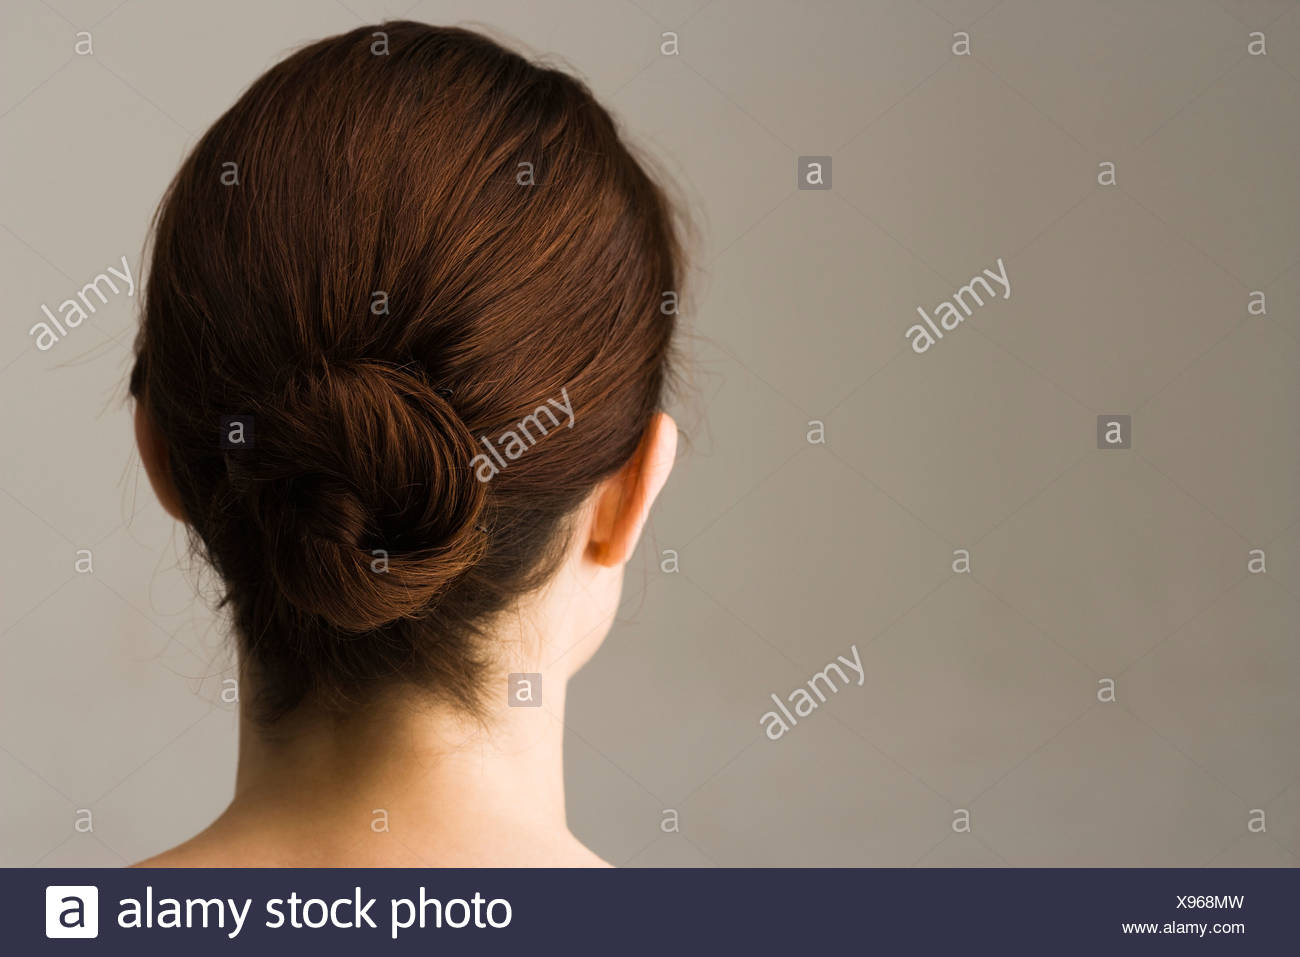 Woman with hair arranged in chignon, rear view - Stock Image